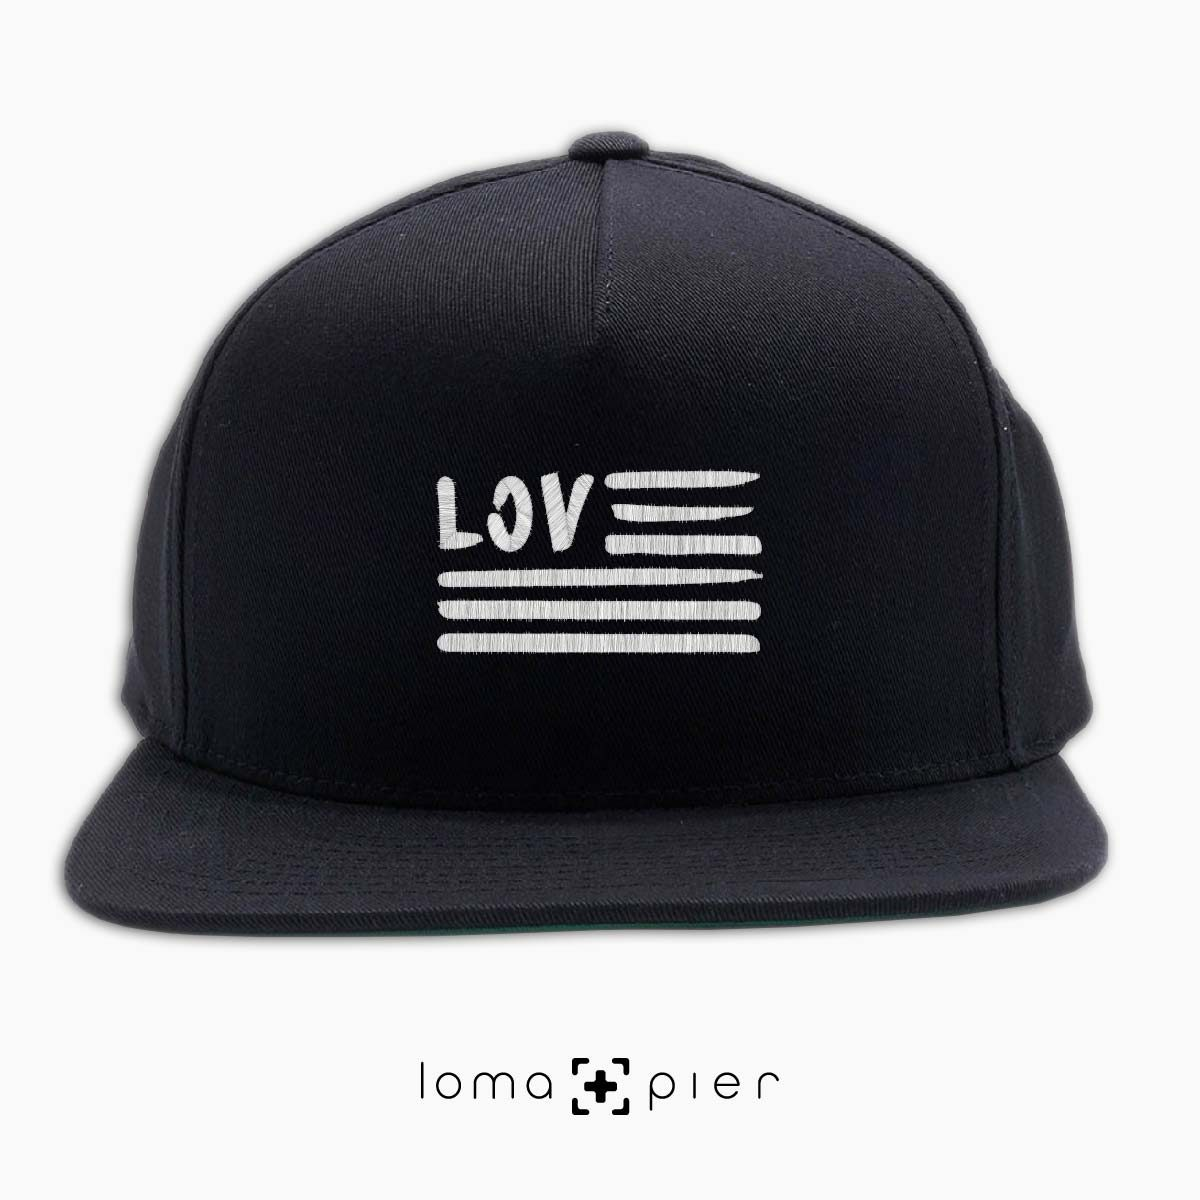 AMERICAN LOVE icon embroidered on a black classic snapback hat with white thread by loma+pier hat store